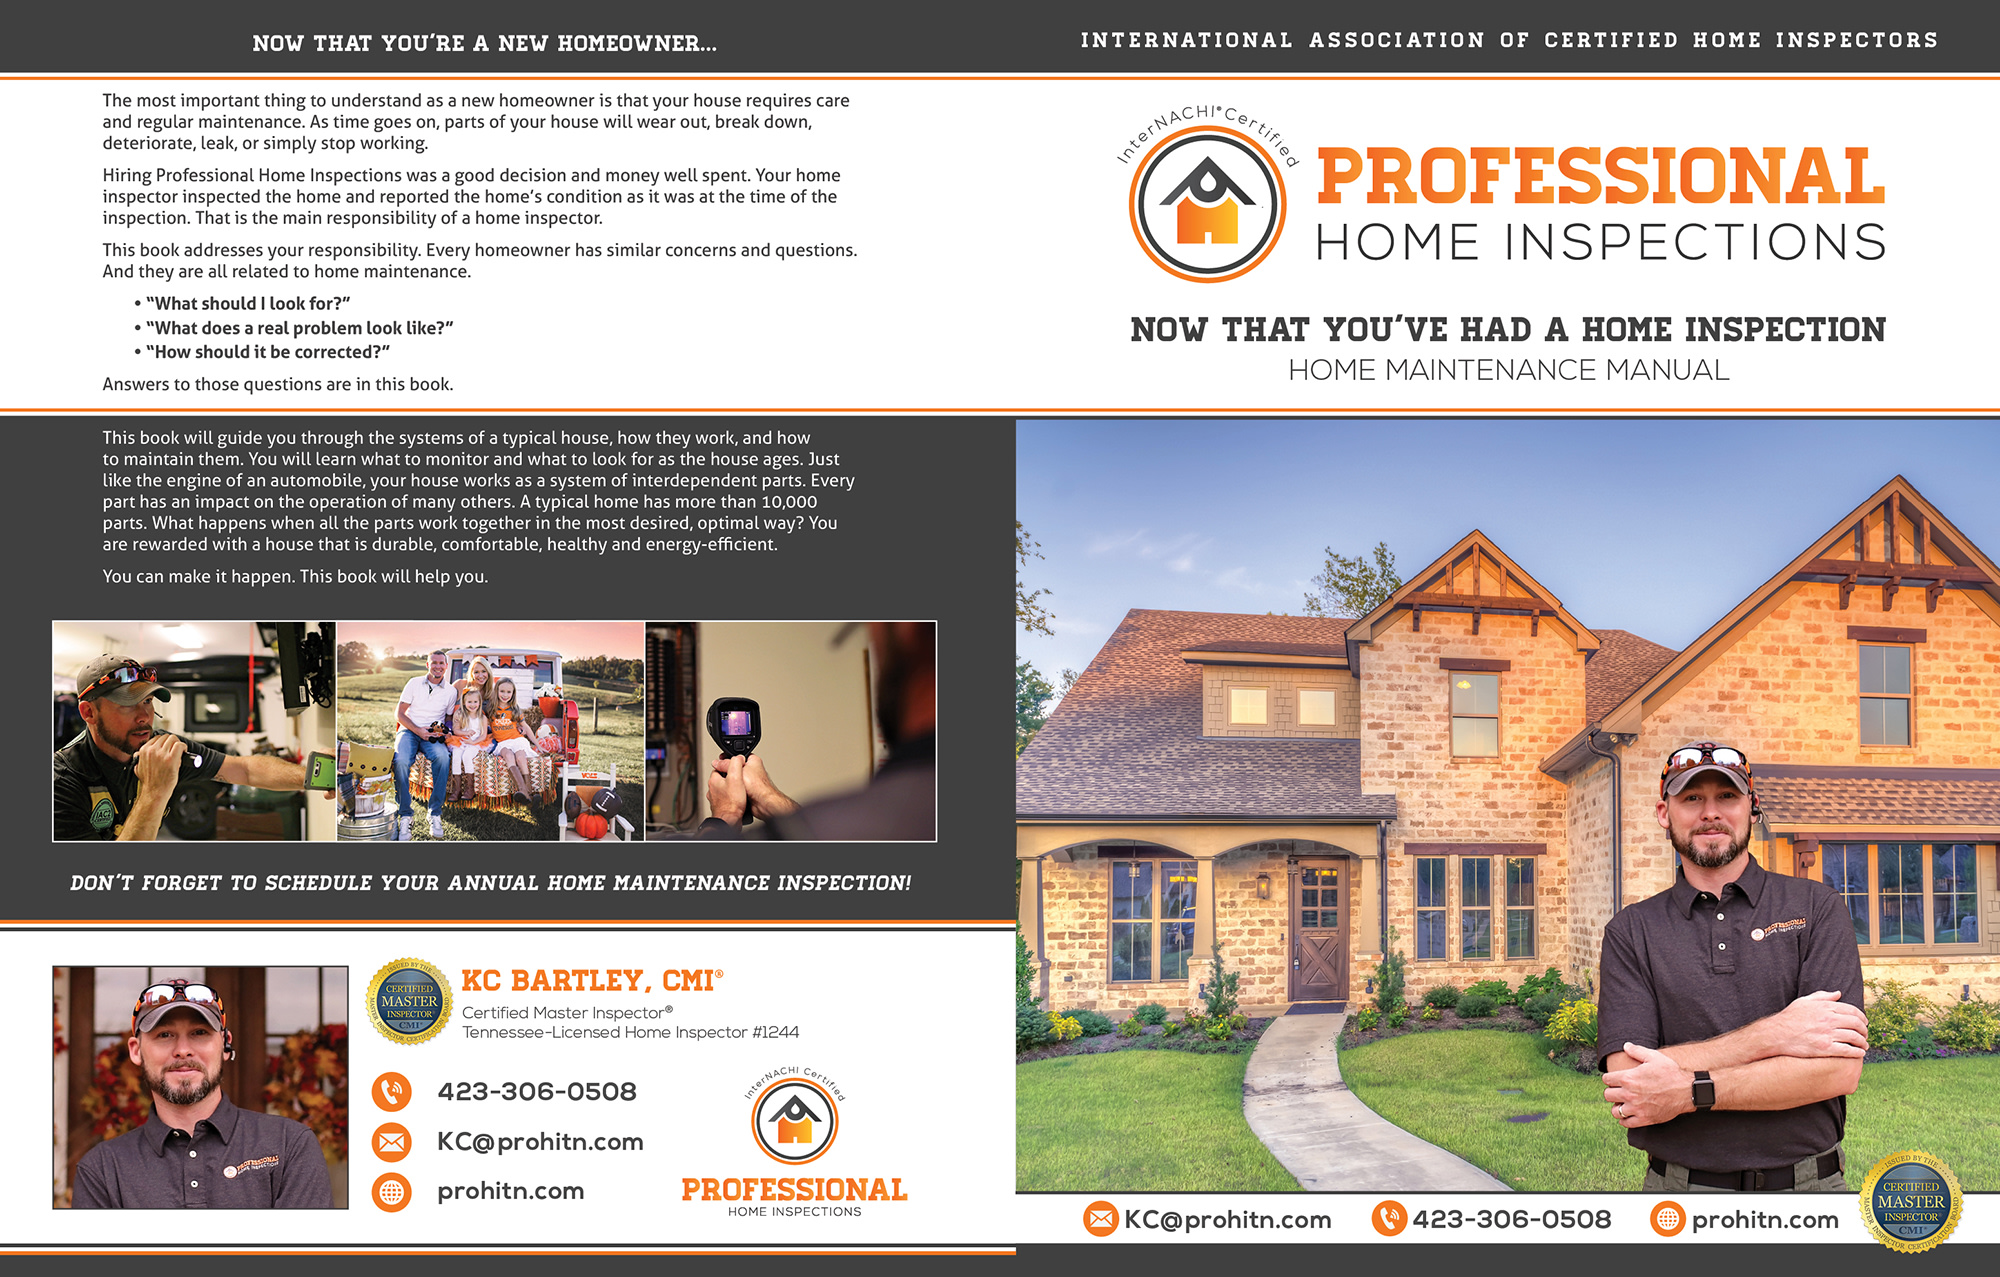 Custom Home Maintenance Book for Professional Home Inspections